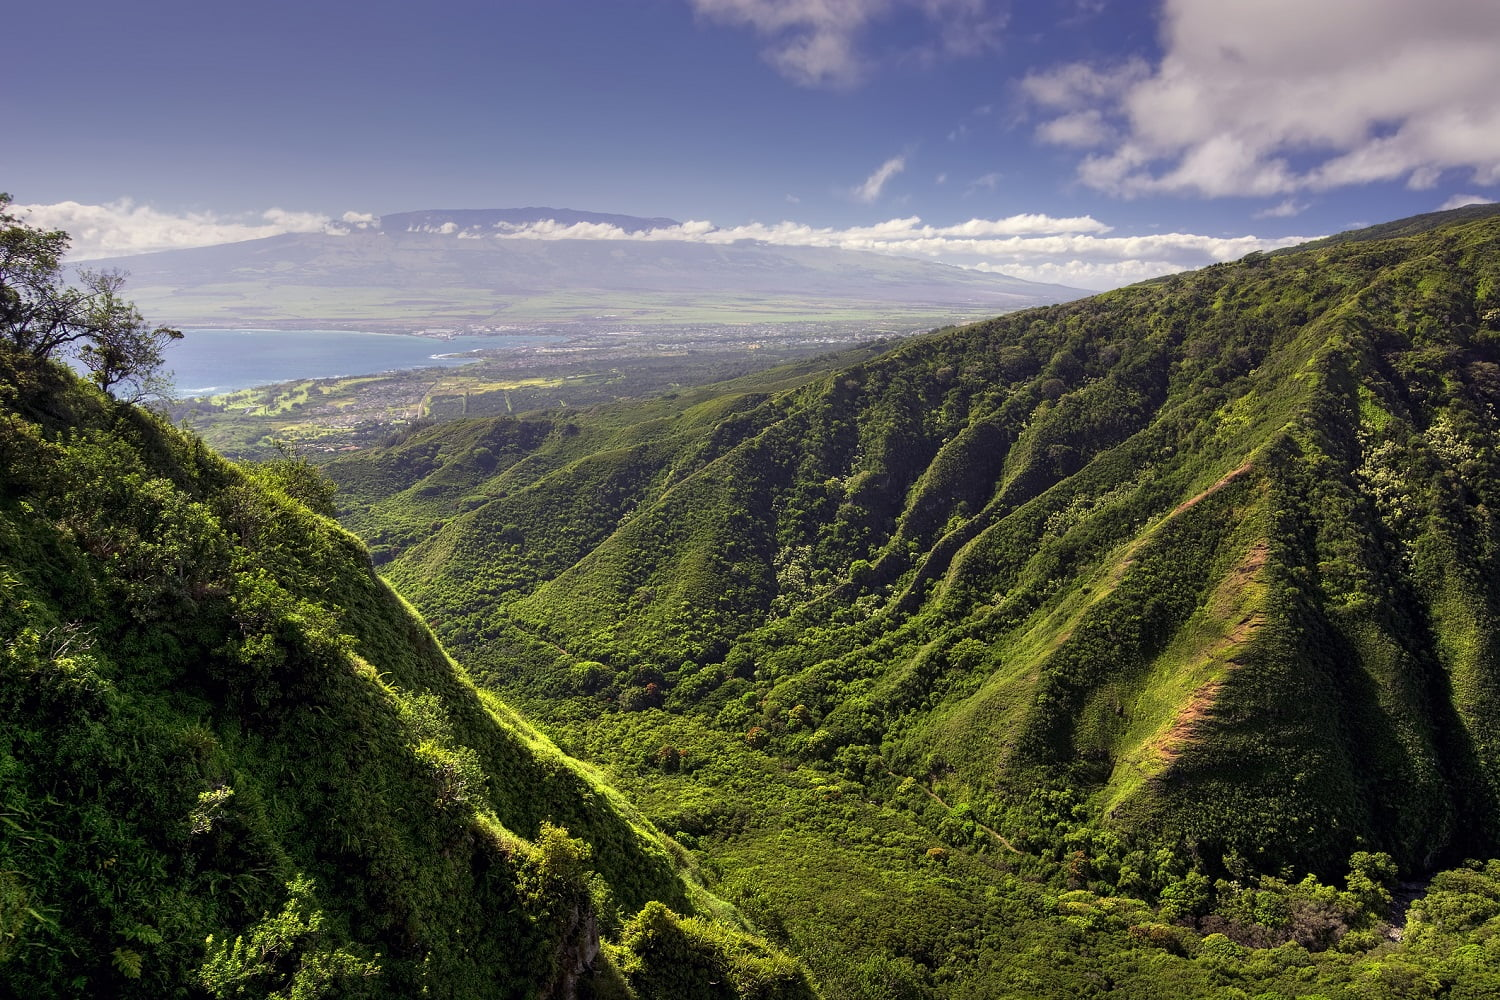 View of Kahului and Haleakala, one of the best excursions on Maui